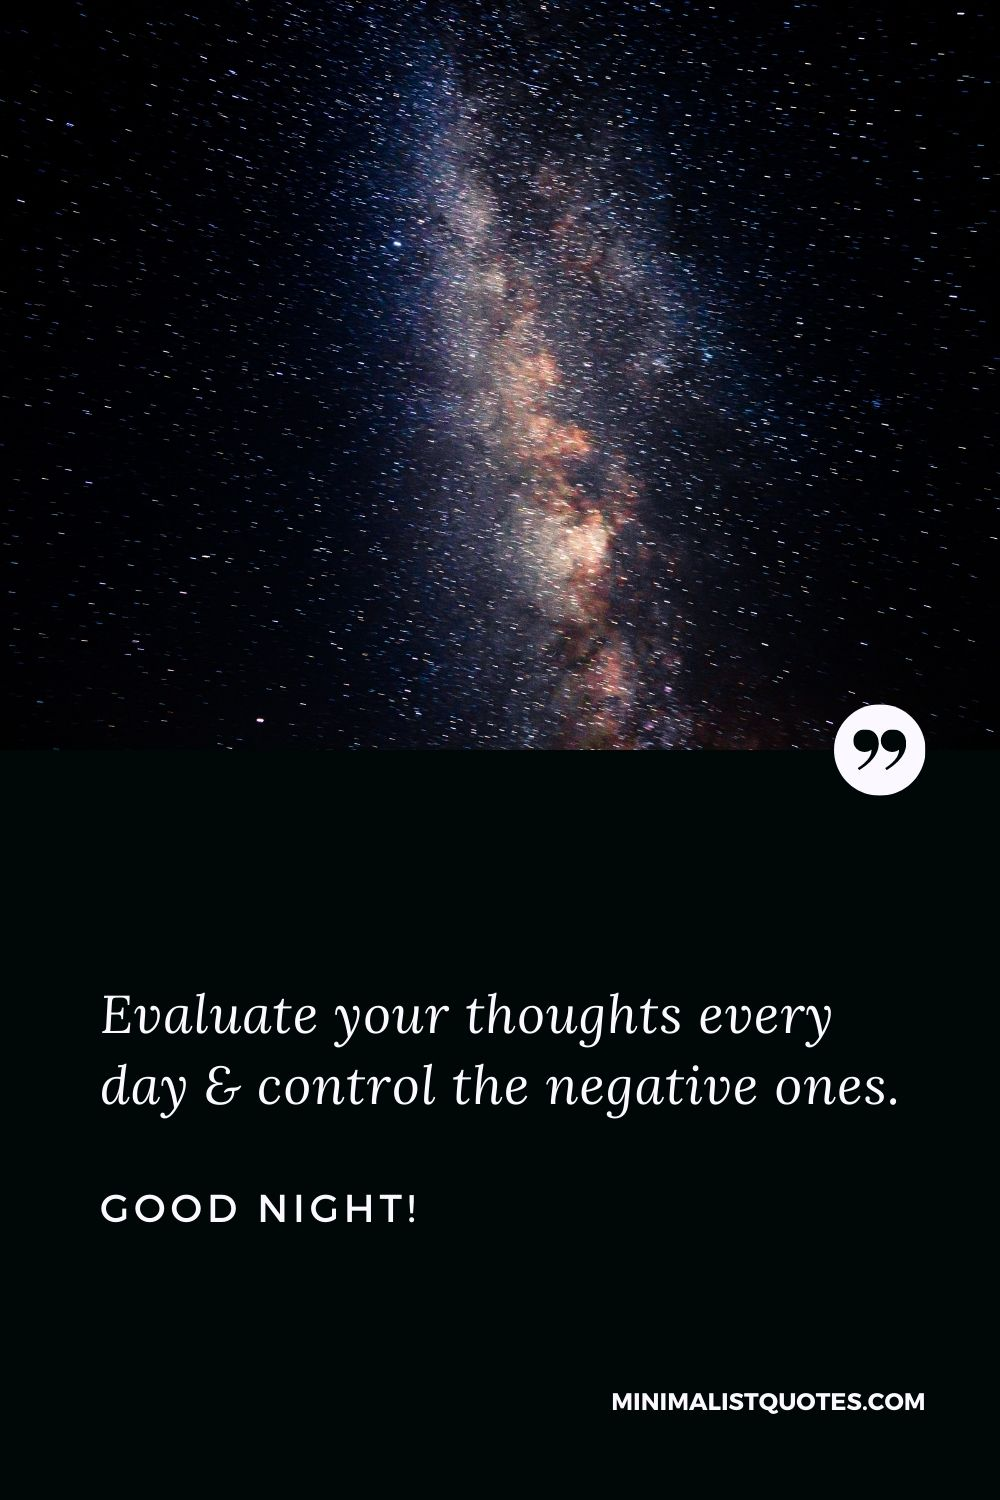 Good Night Wish & Message With HD Image: Evaluate your thoughts every day & control the negative ones.